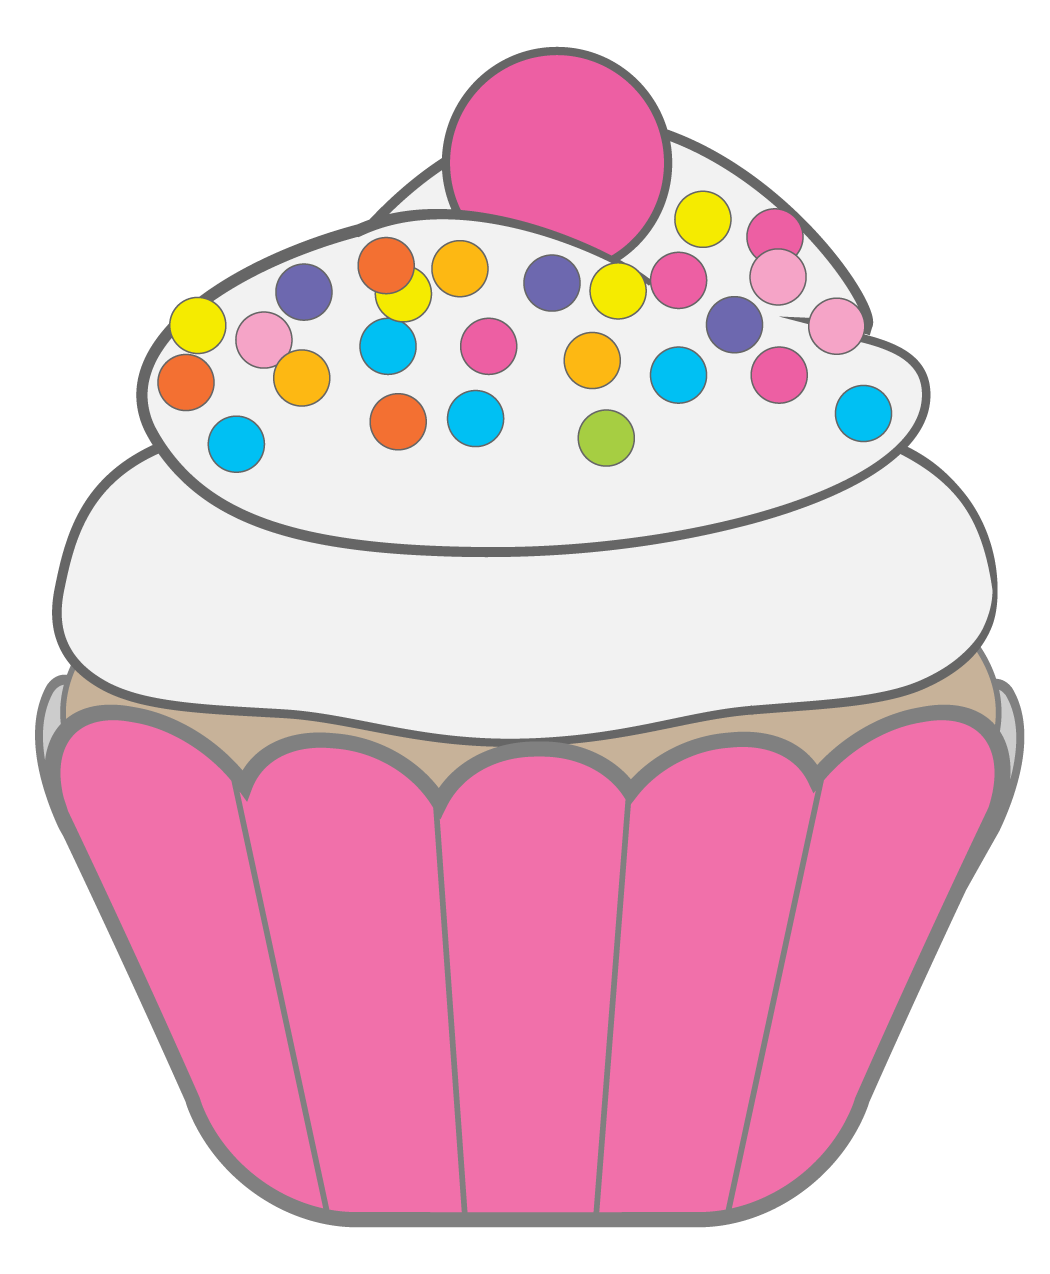 Jelly clipart single. Colorful cupcake